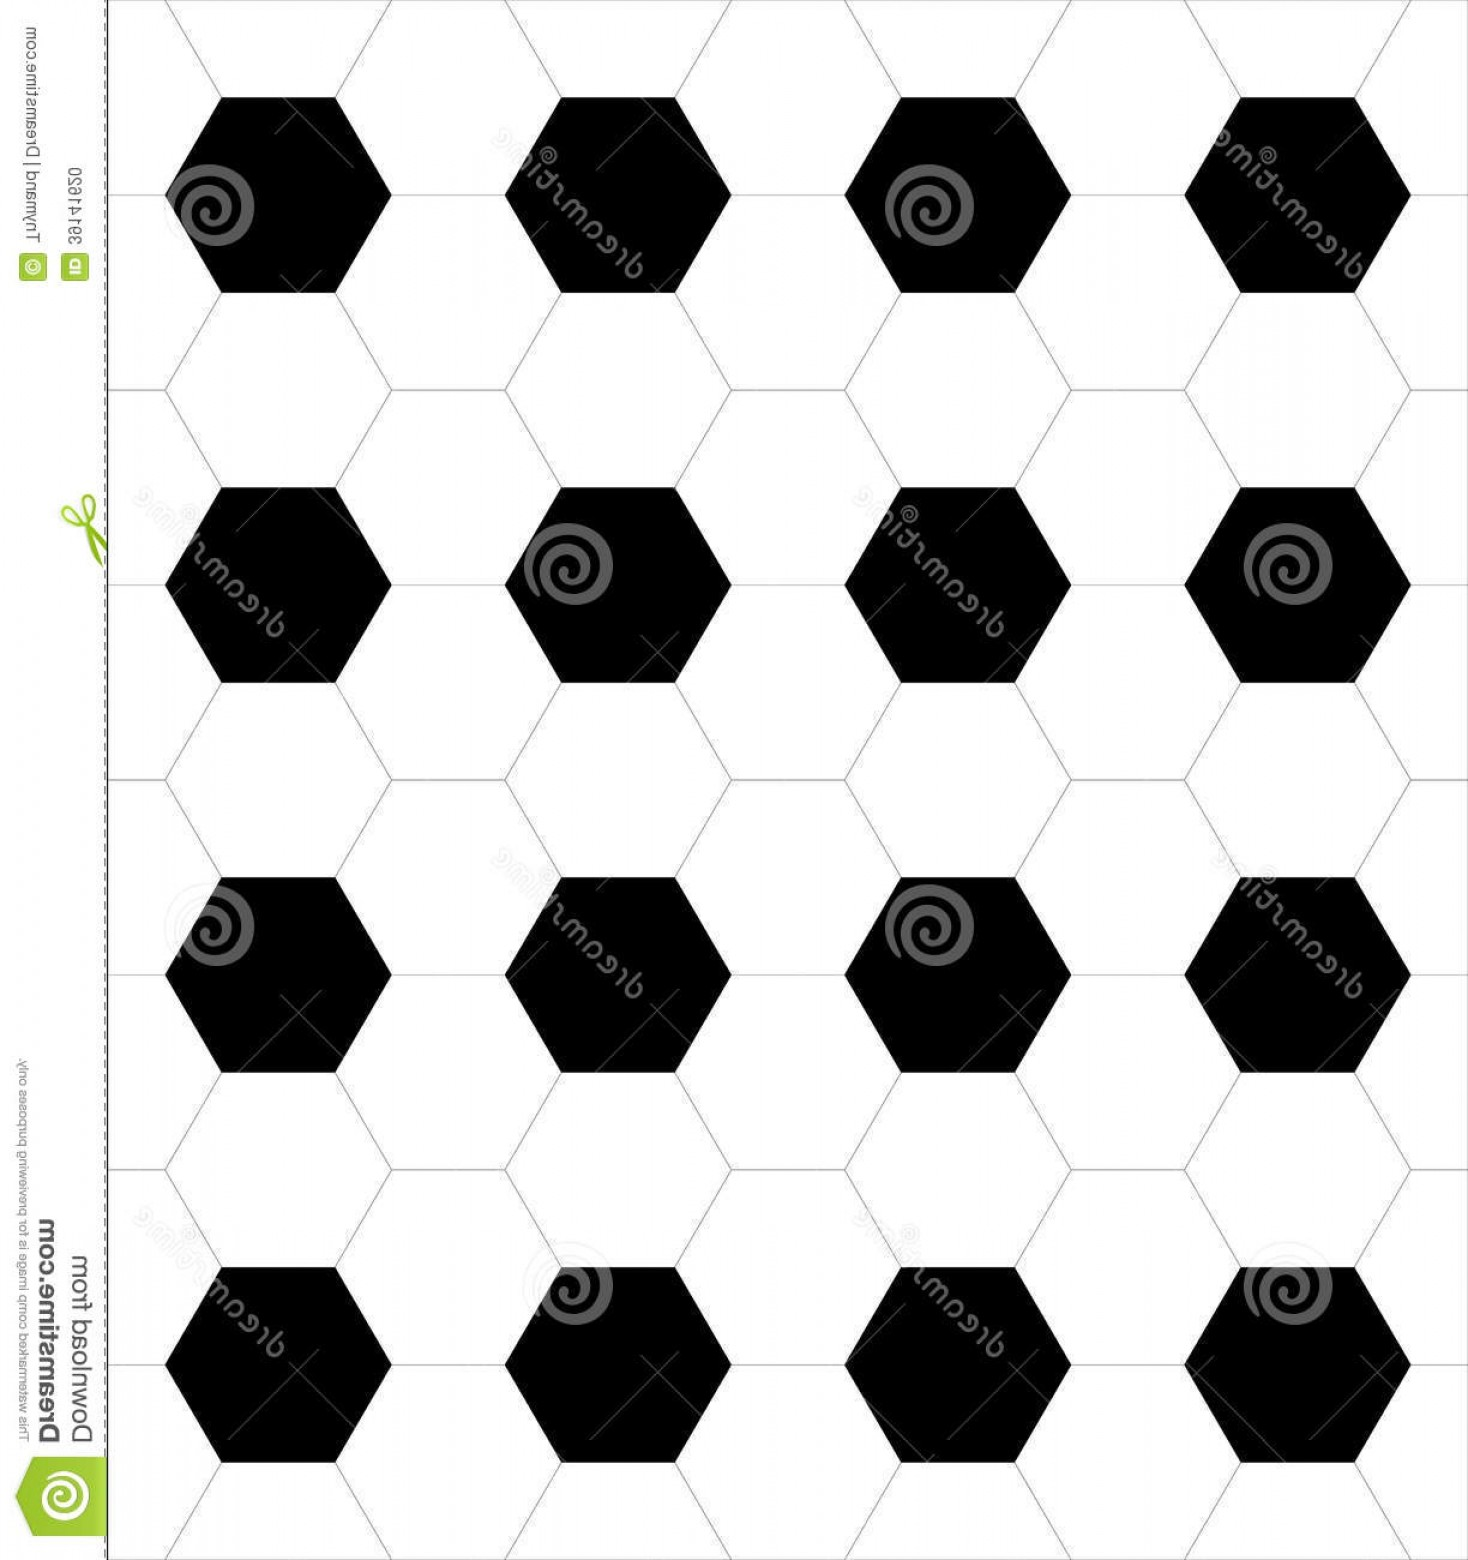 Vector Soccer Ball Pattern: Stock Photo Abstract Hexagons Soccer Ball Pattern Vector Background Illustration Eps Image